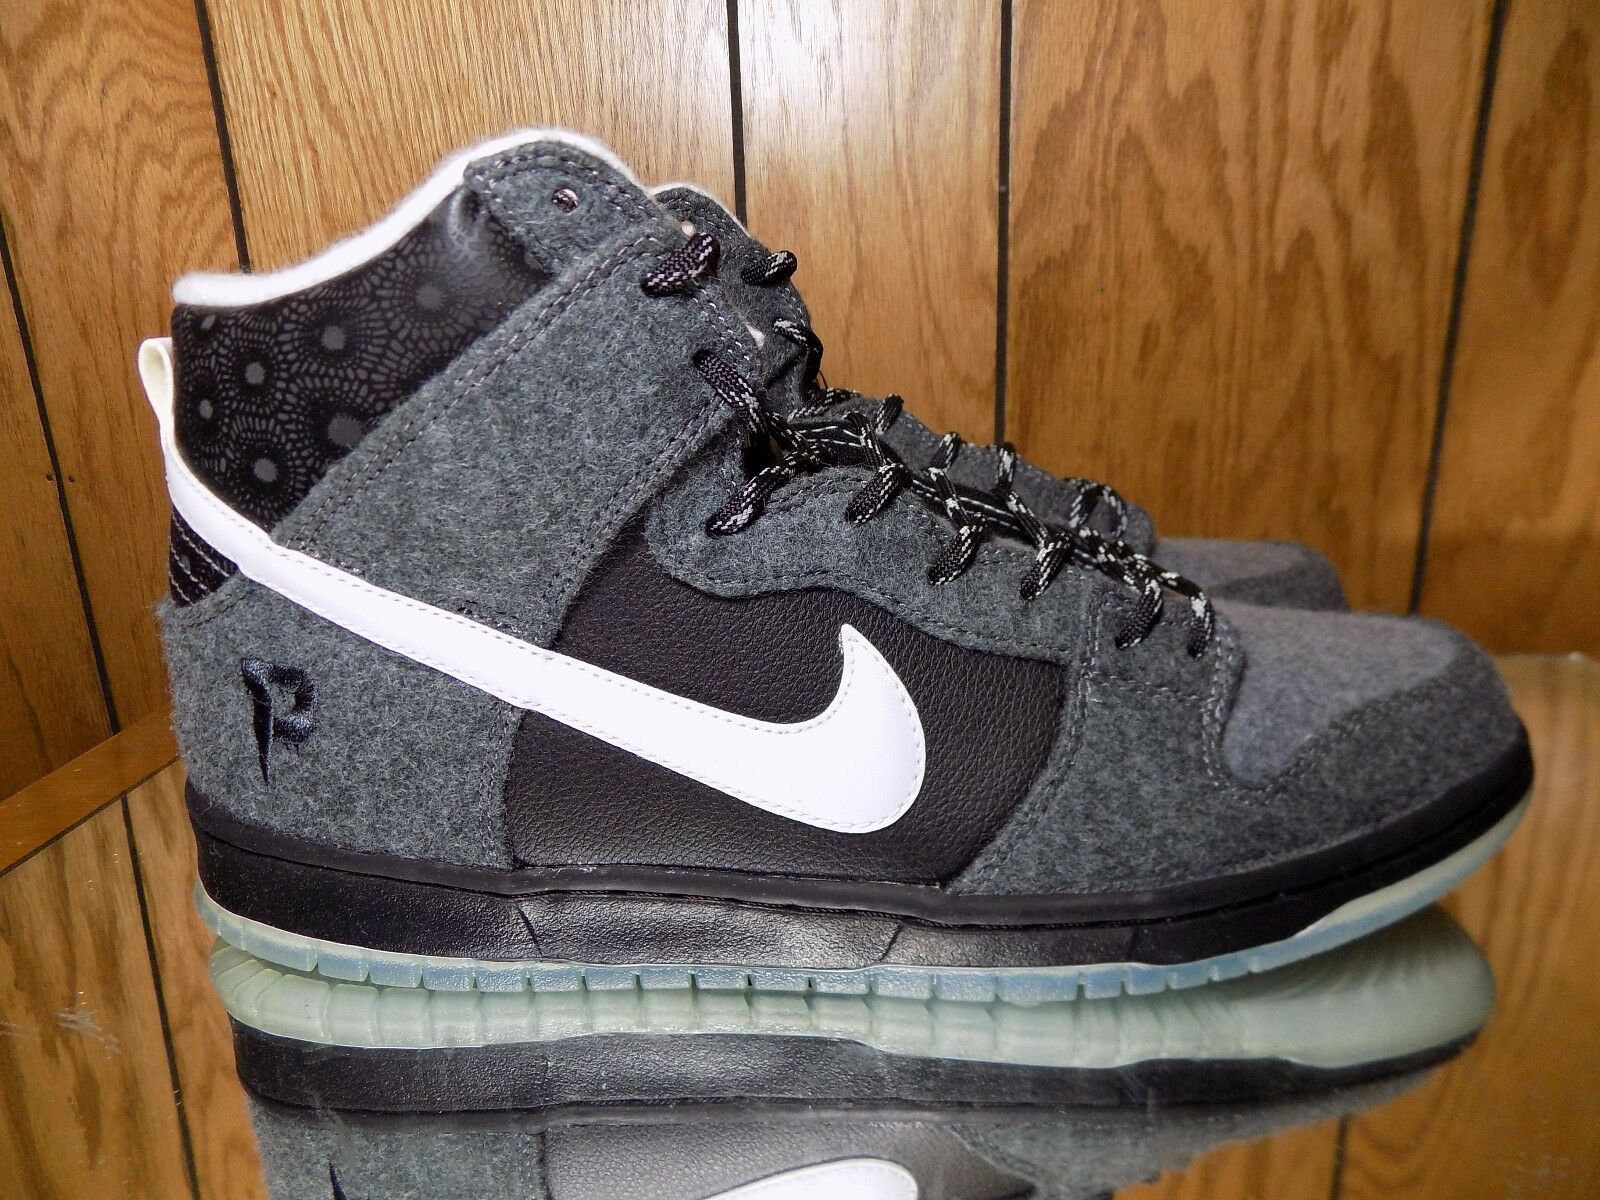 Nike Dunk High SB PREMIER Branded PETOSKEY CHARCOAL GREY ICE 645986-010 s.10